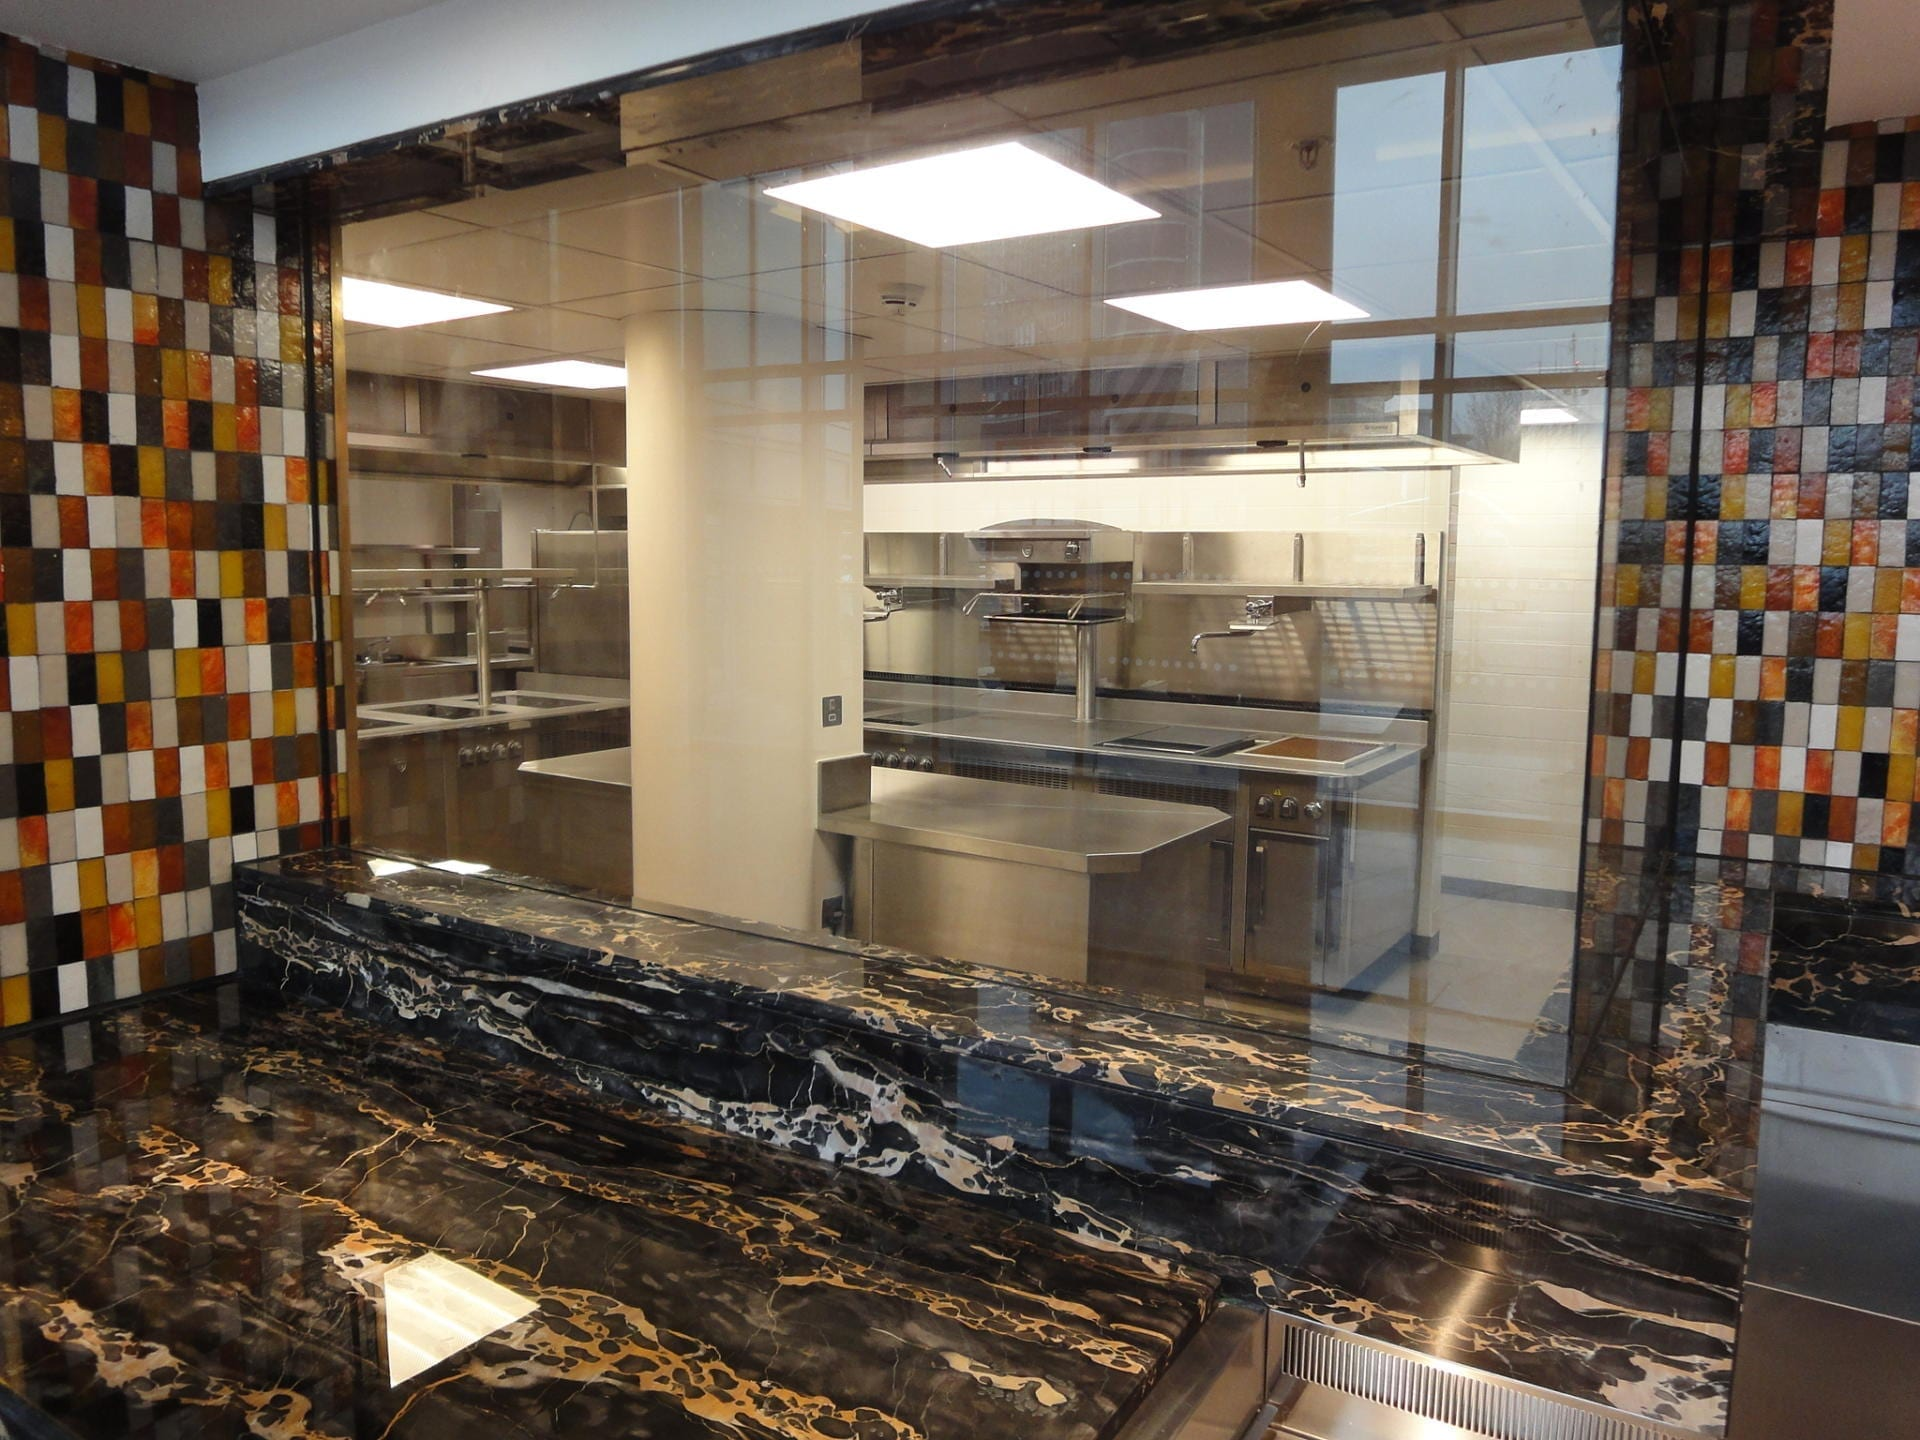 Hotel-Verta-Von-Essen-Battersea-Kitchen-Fabrication-Stainless-Steel-Commercial-spacecatering_12